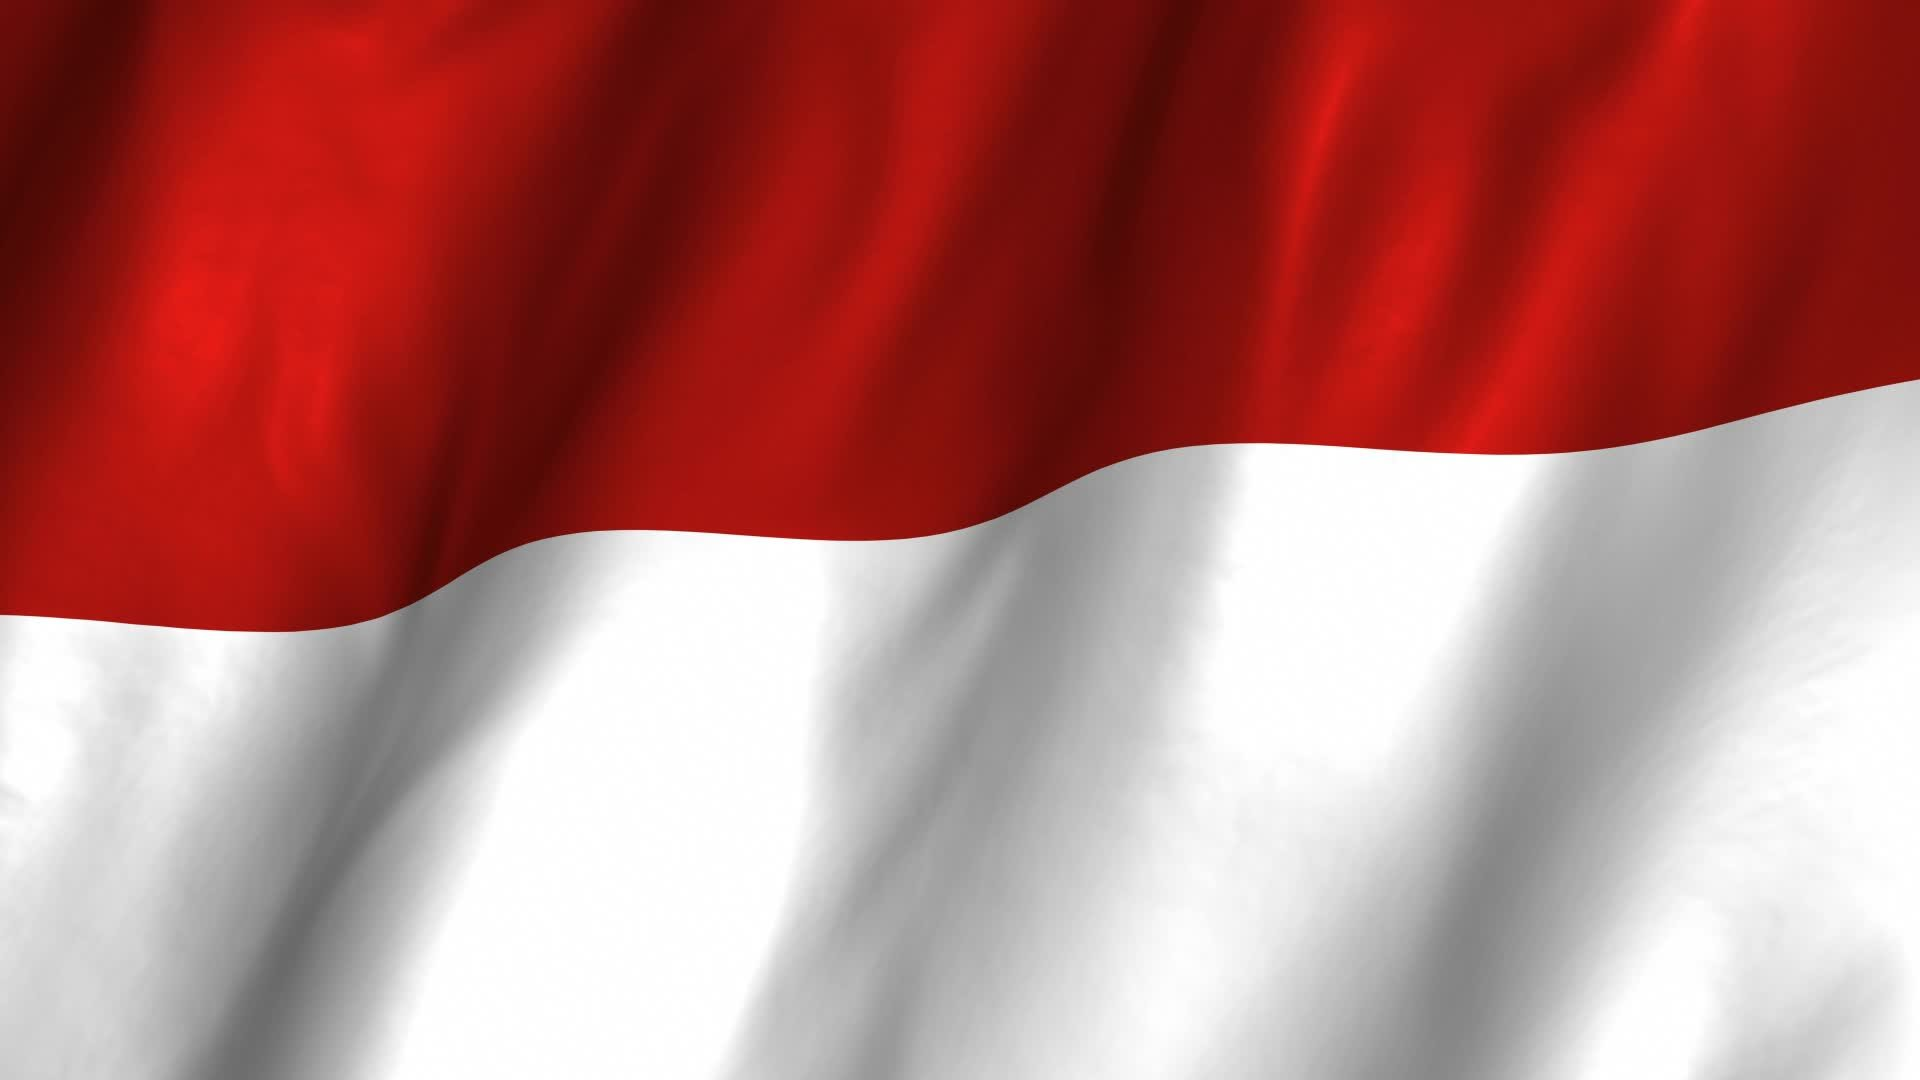 Indonesia Flag All about Indonesia Flag colors, meaning